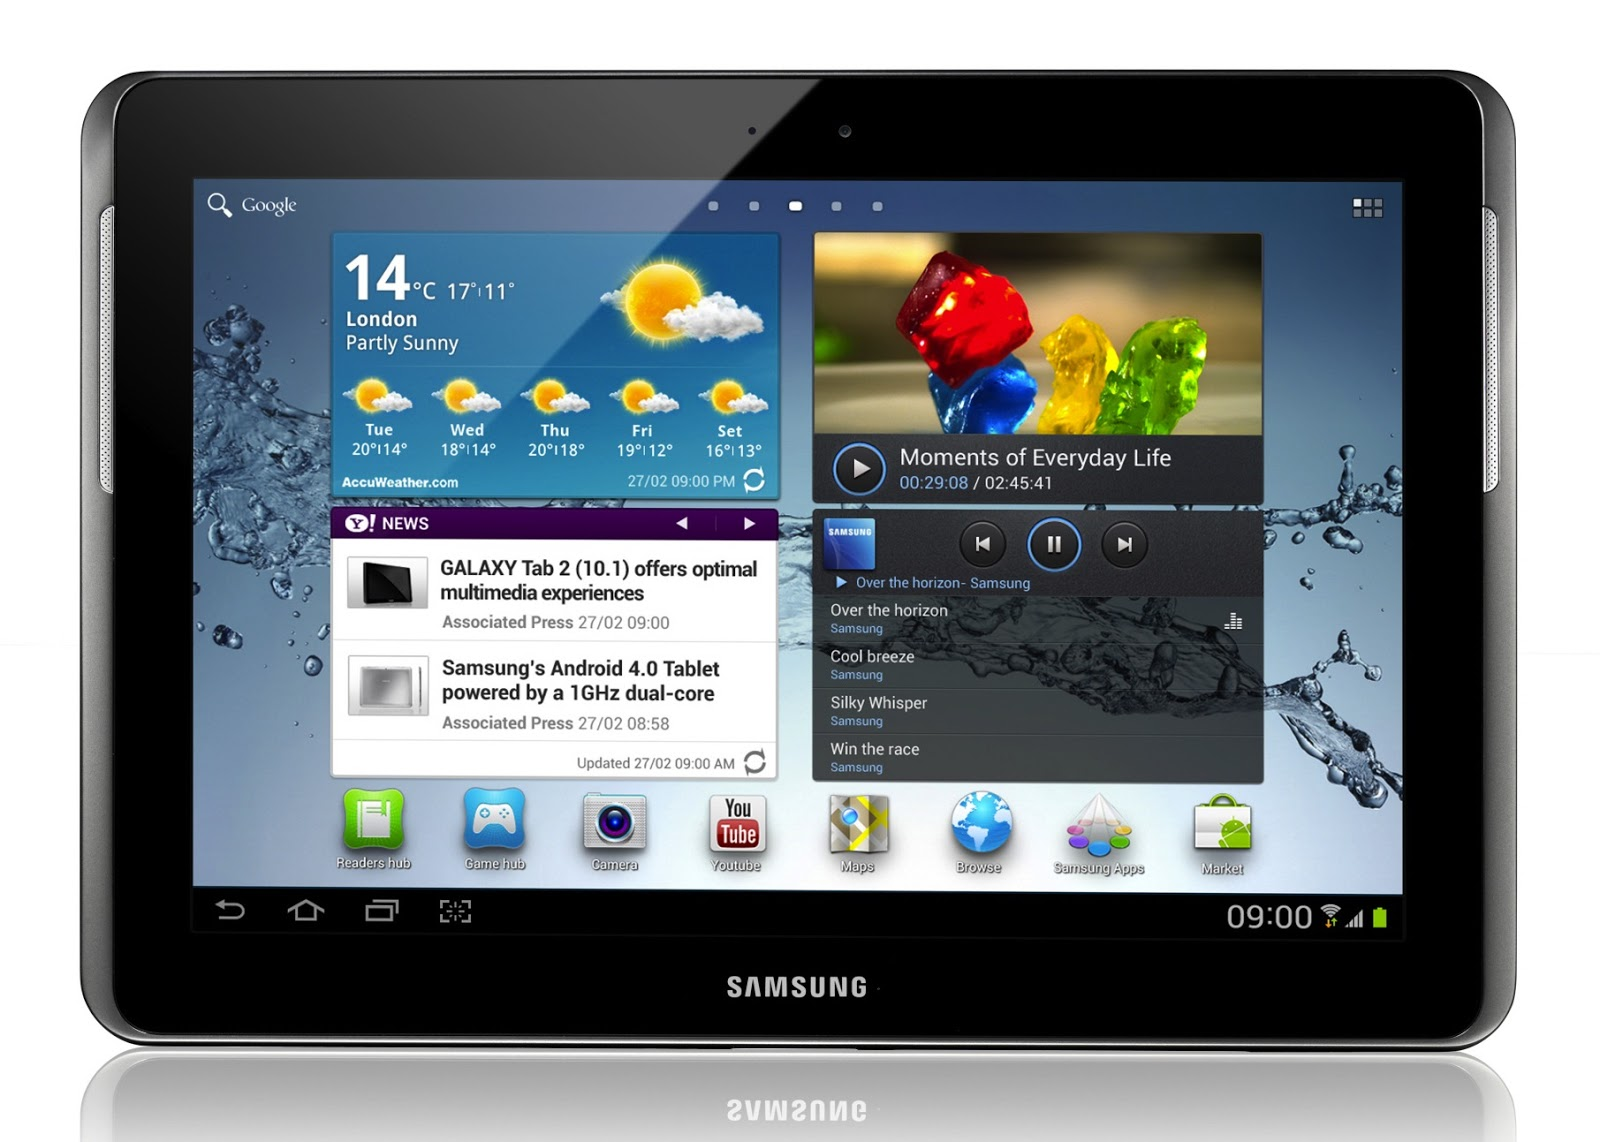 Best Custom Rom for Galaxy Tab 2 7.0 P3100 with SlimBean (build 6) JB